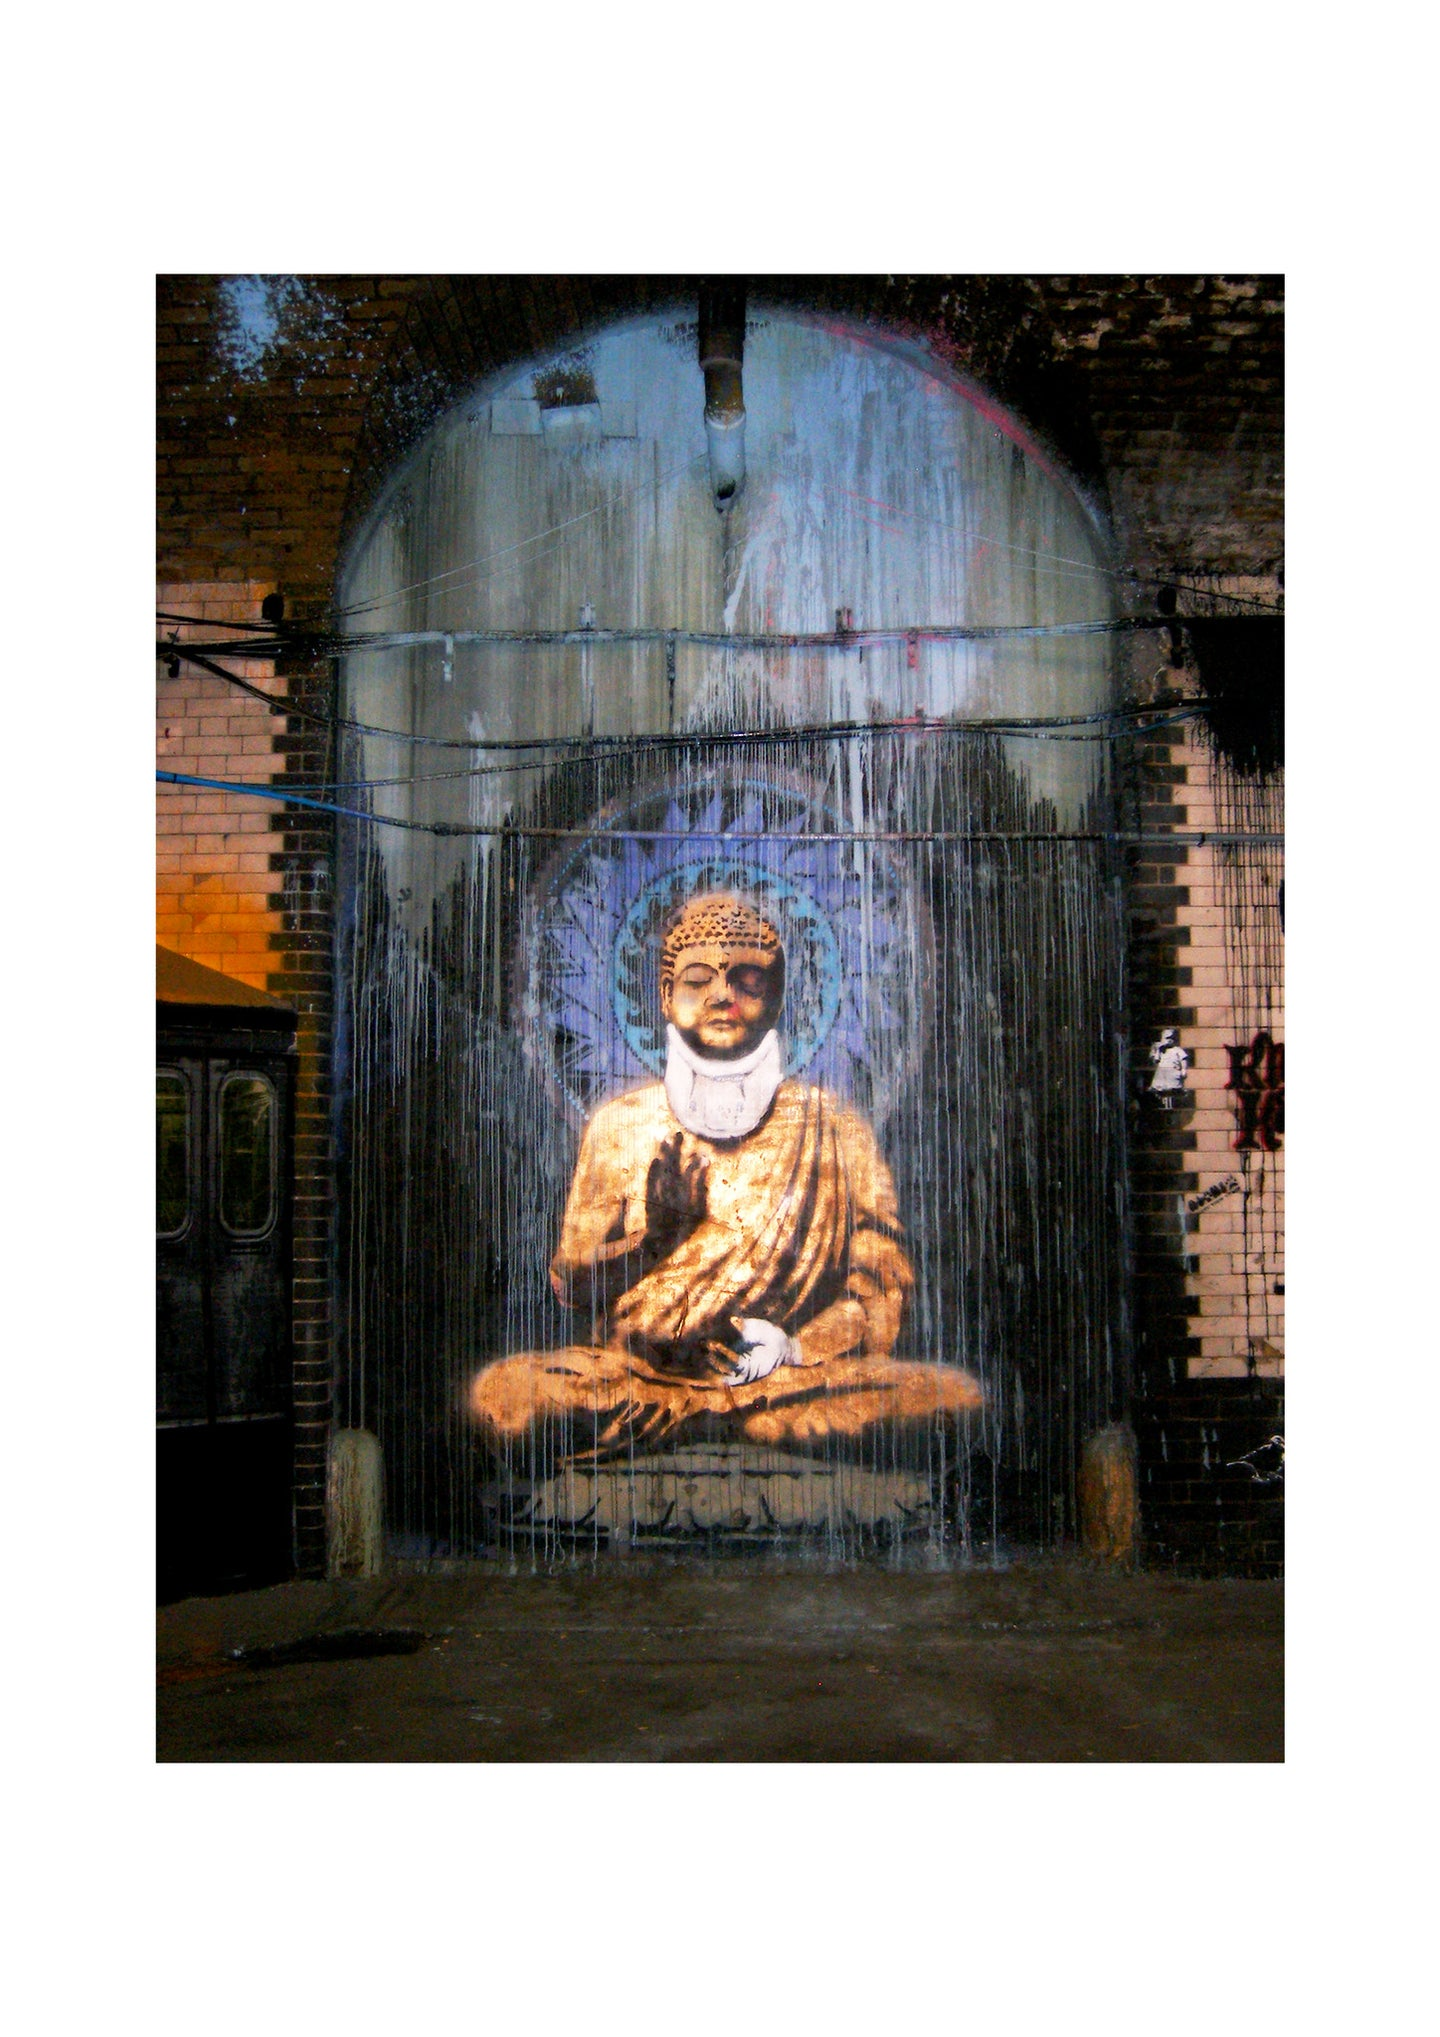 'Buddha' Open Edition Giclée Print by Stephen Pick